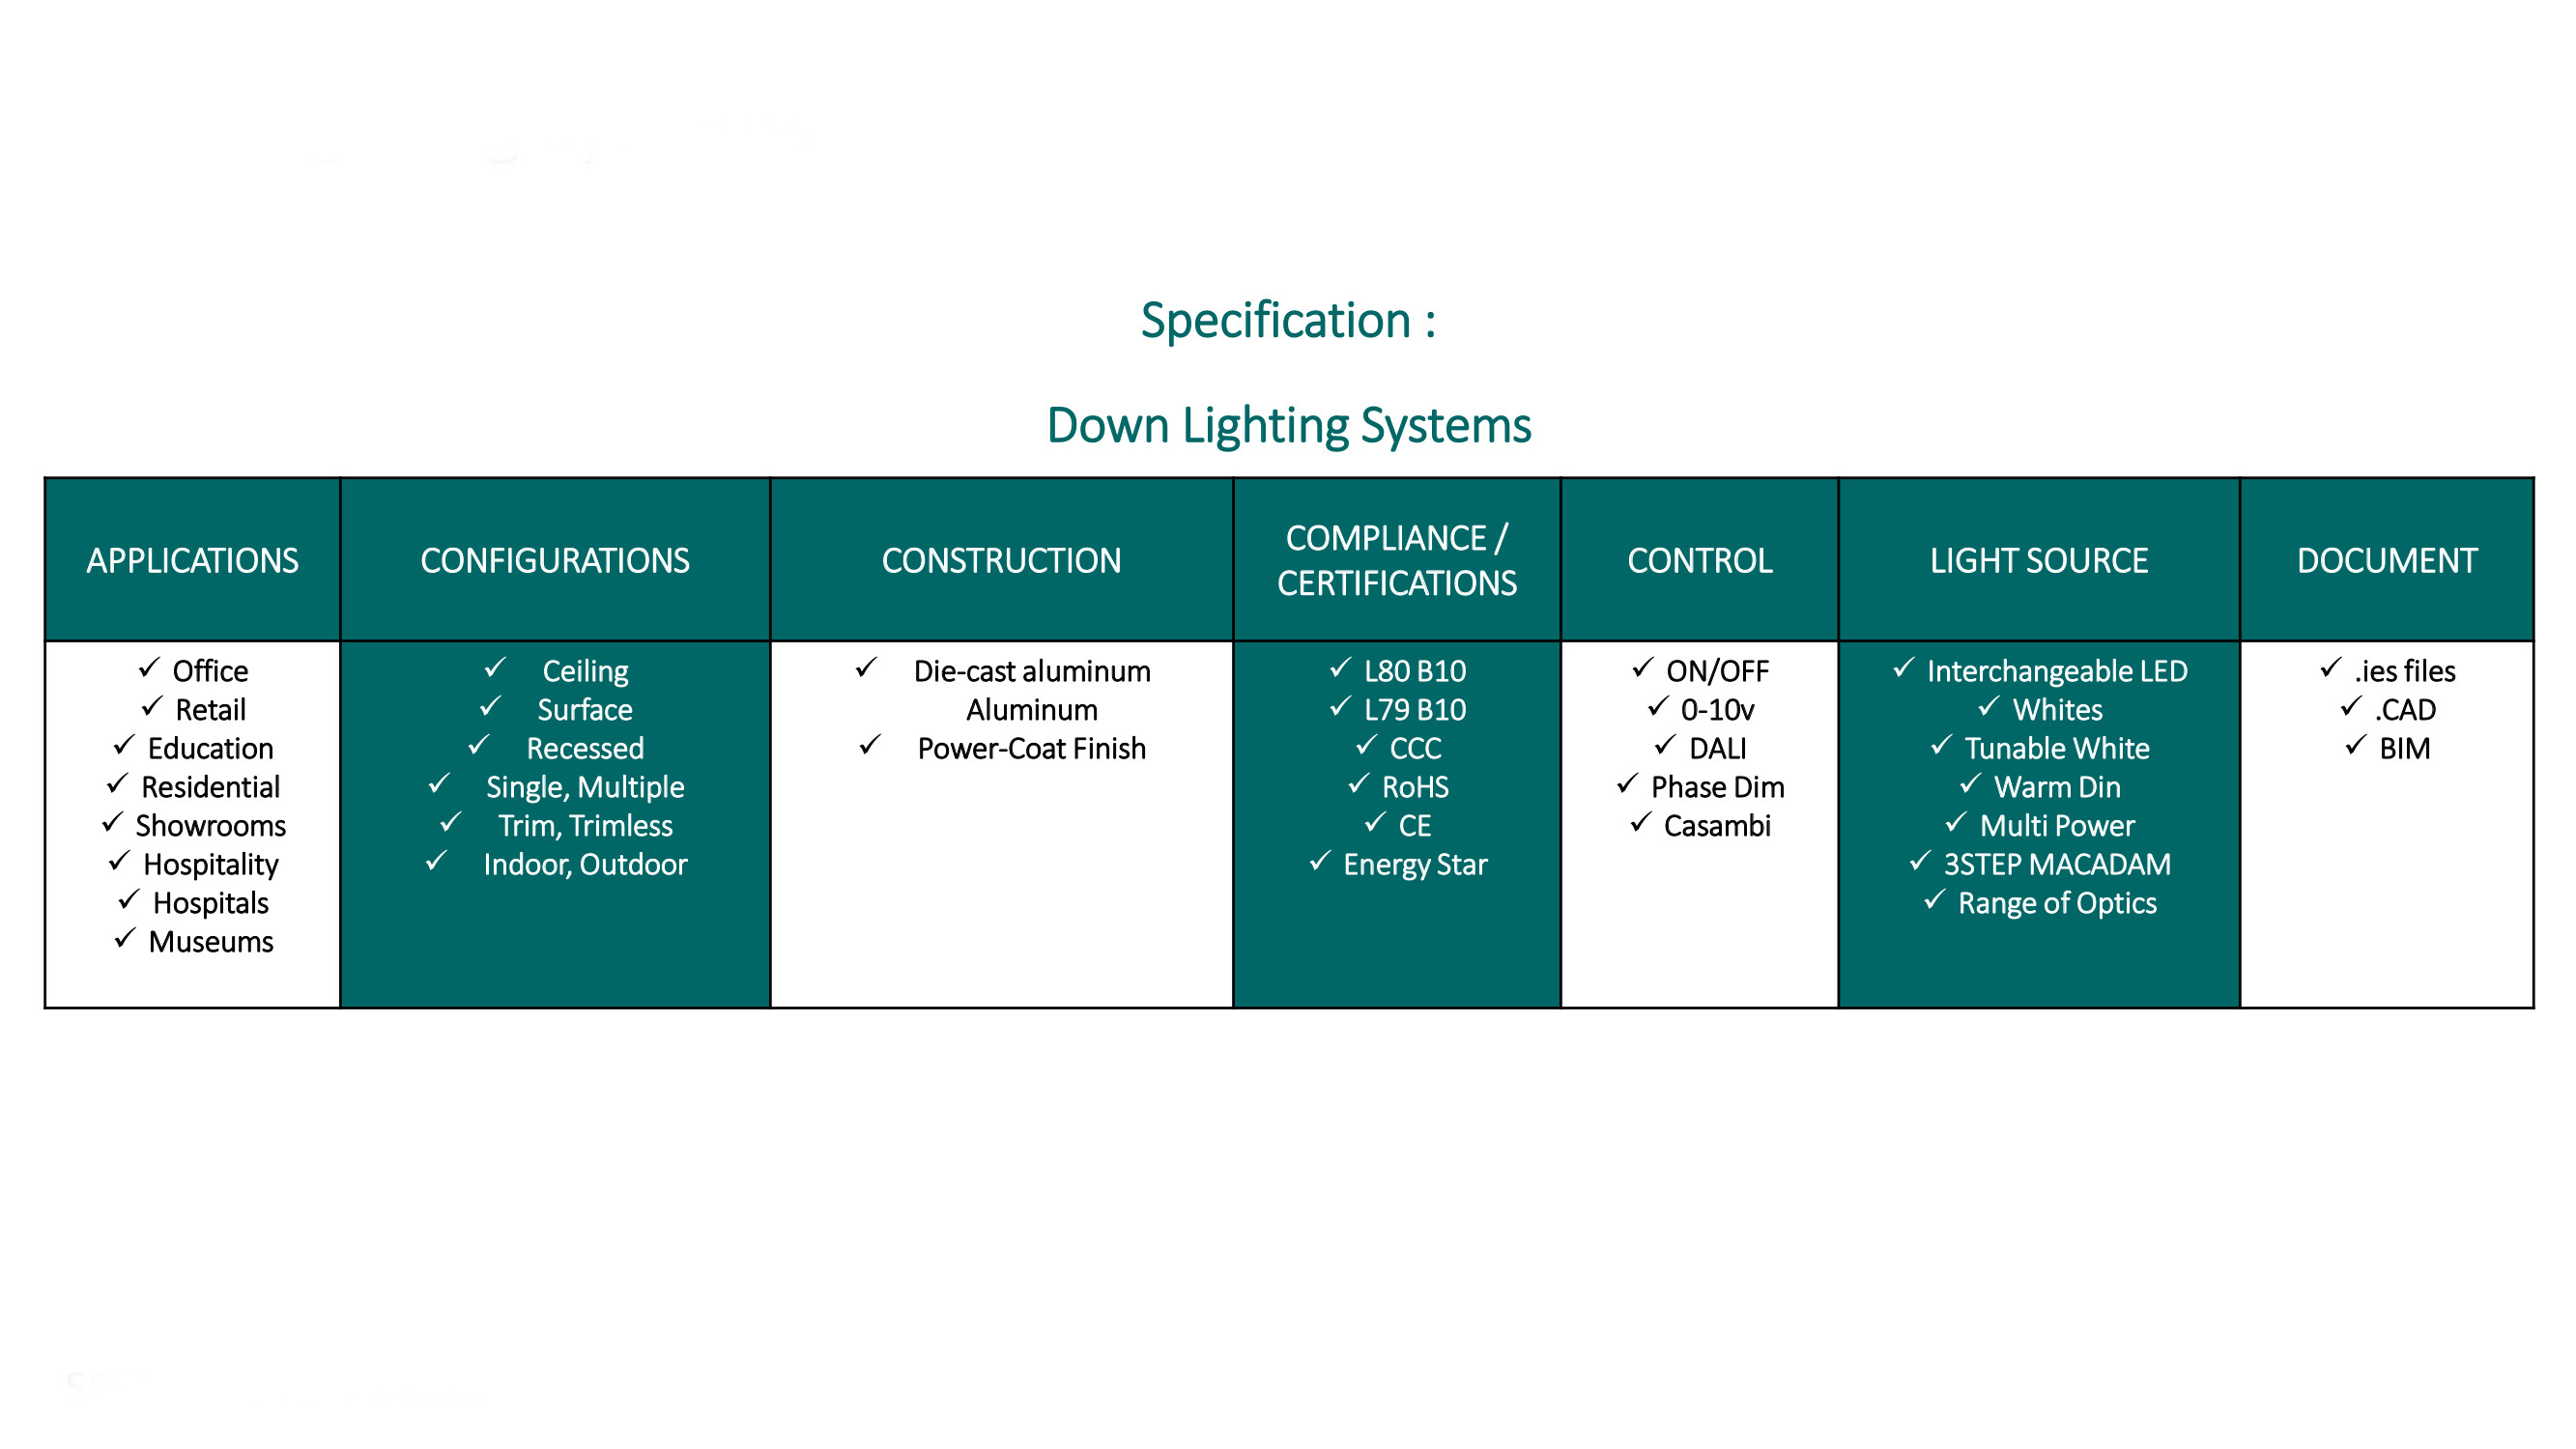 Down Lighting Systems Specification Table Devar